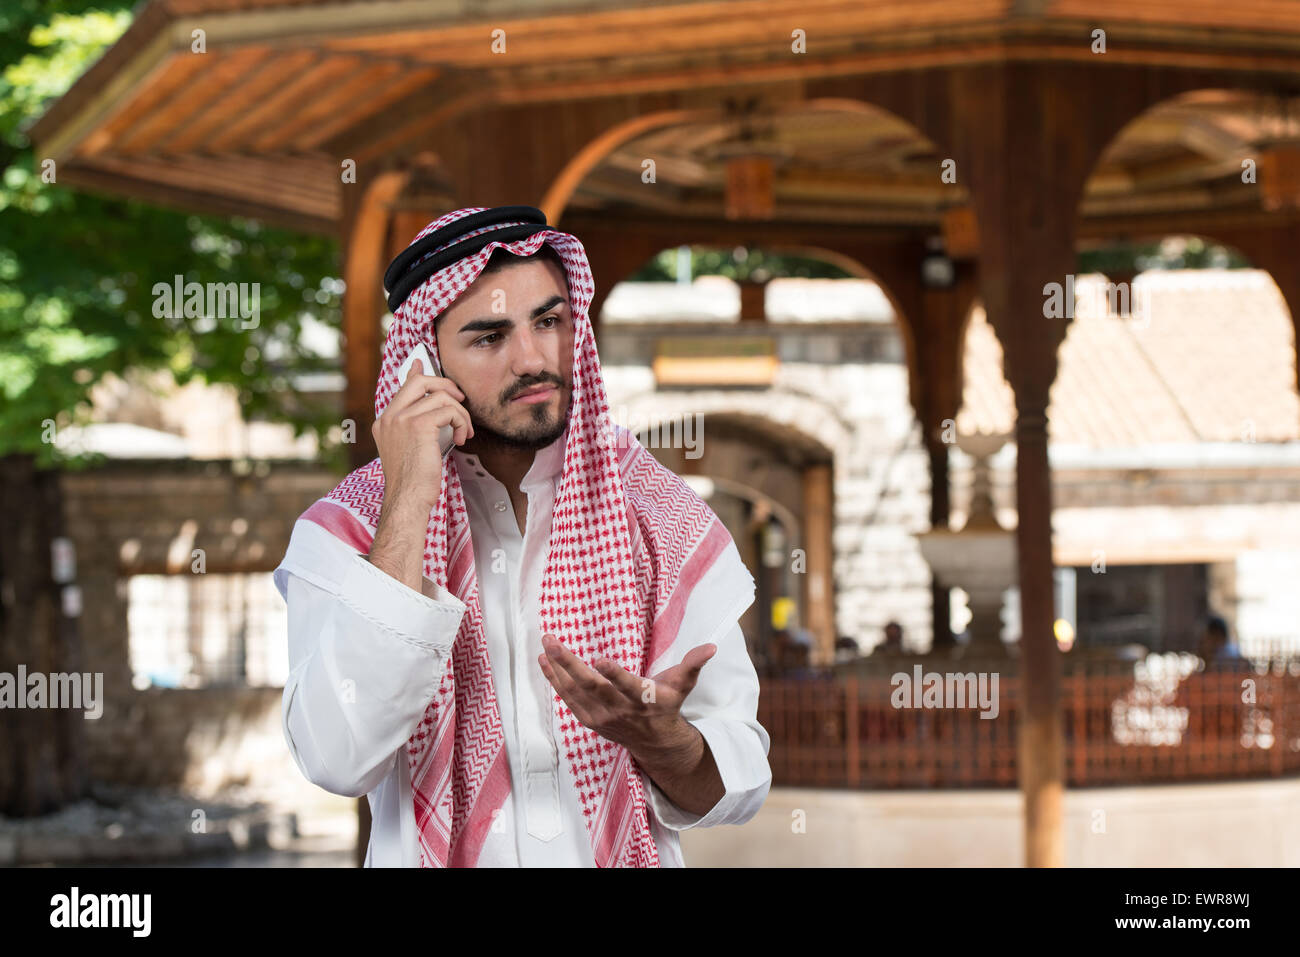 Young Businessman Wearing A Traditional Cap Dishdasha Stock Photo